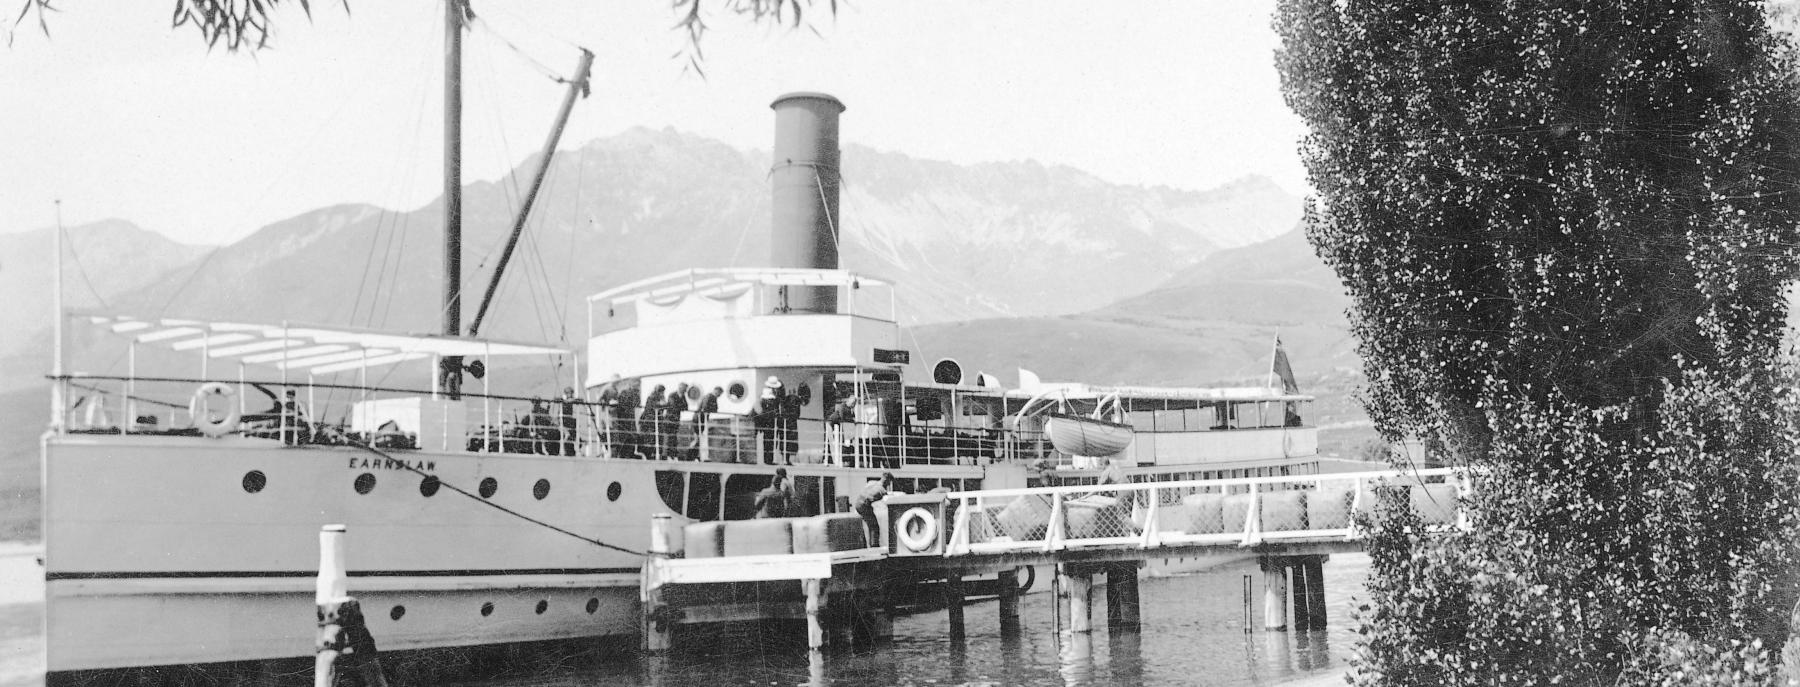 The TSS Earnslaw in the 1950s